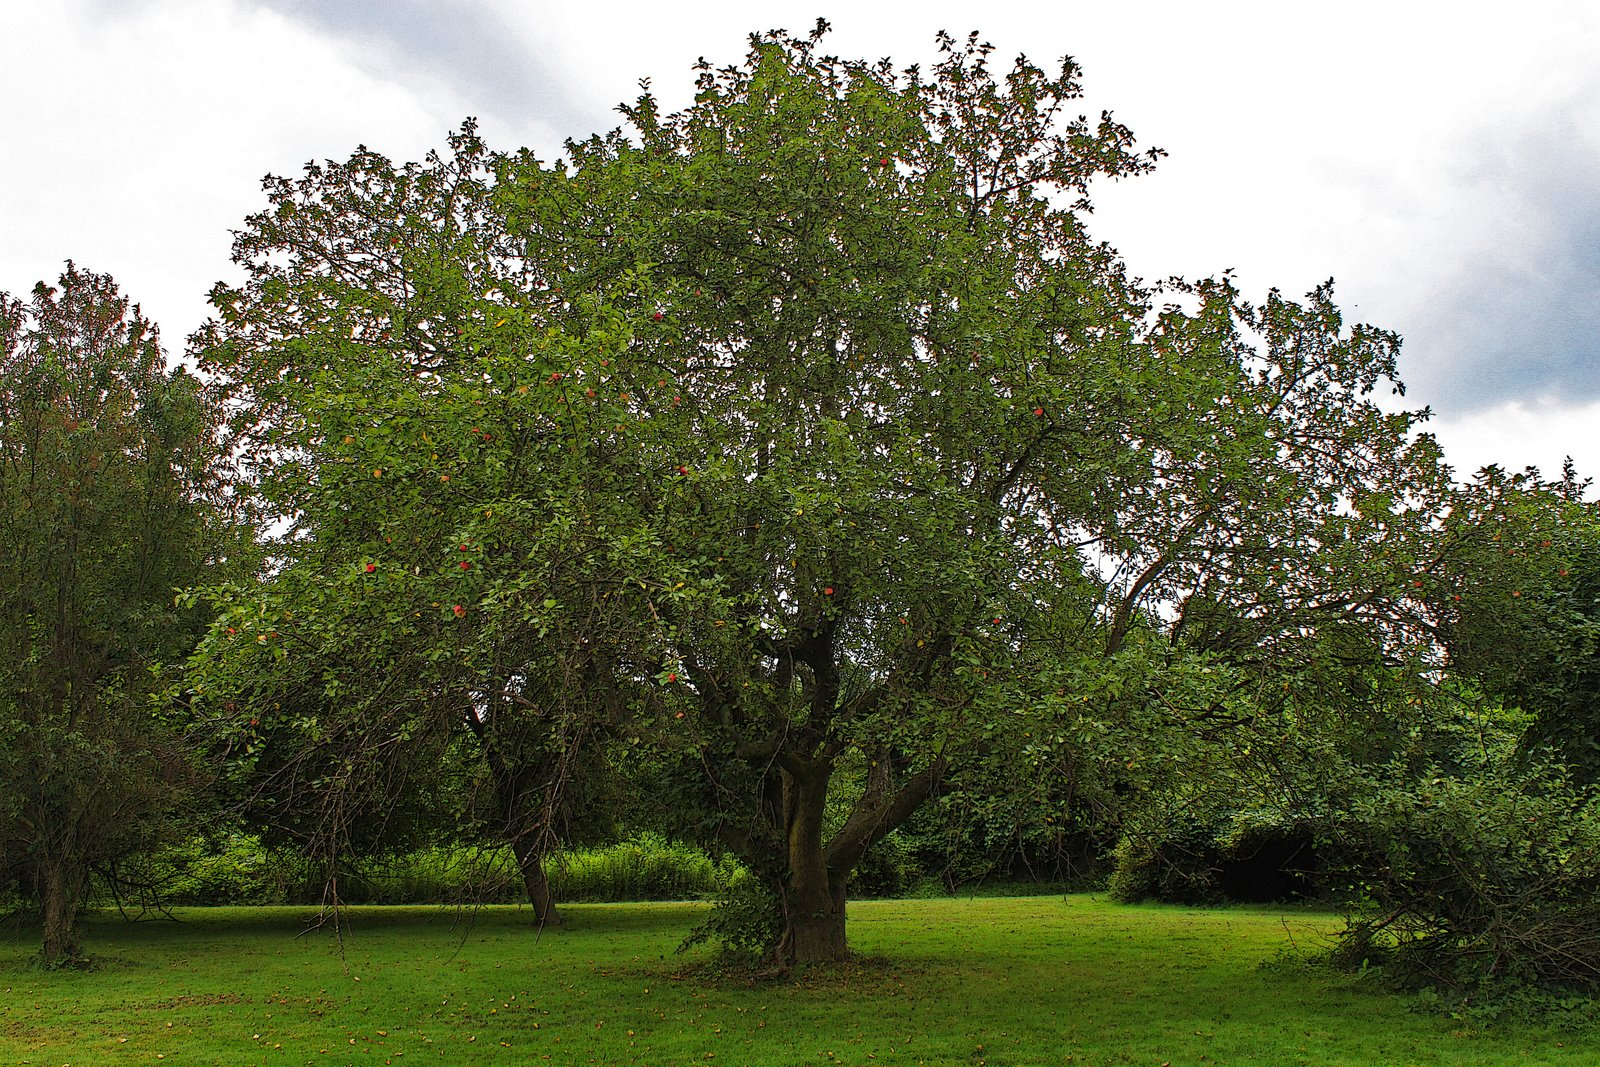 apple tree Pruning apples in the south are usually pruned to an open center habit at planting select 3-4 scaffold branches spaced equally around the trunk and remove other branches flush with the trunk.